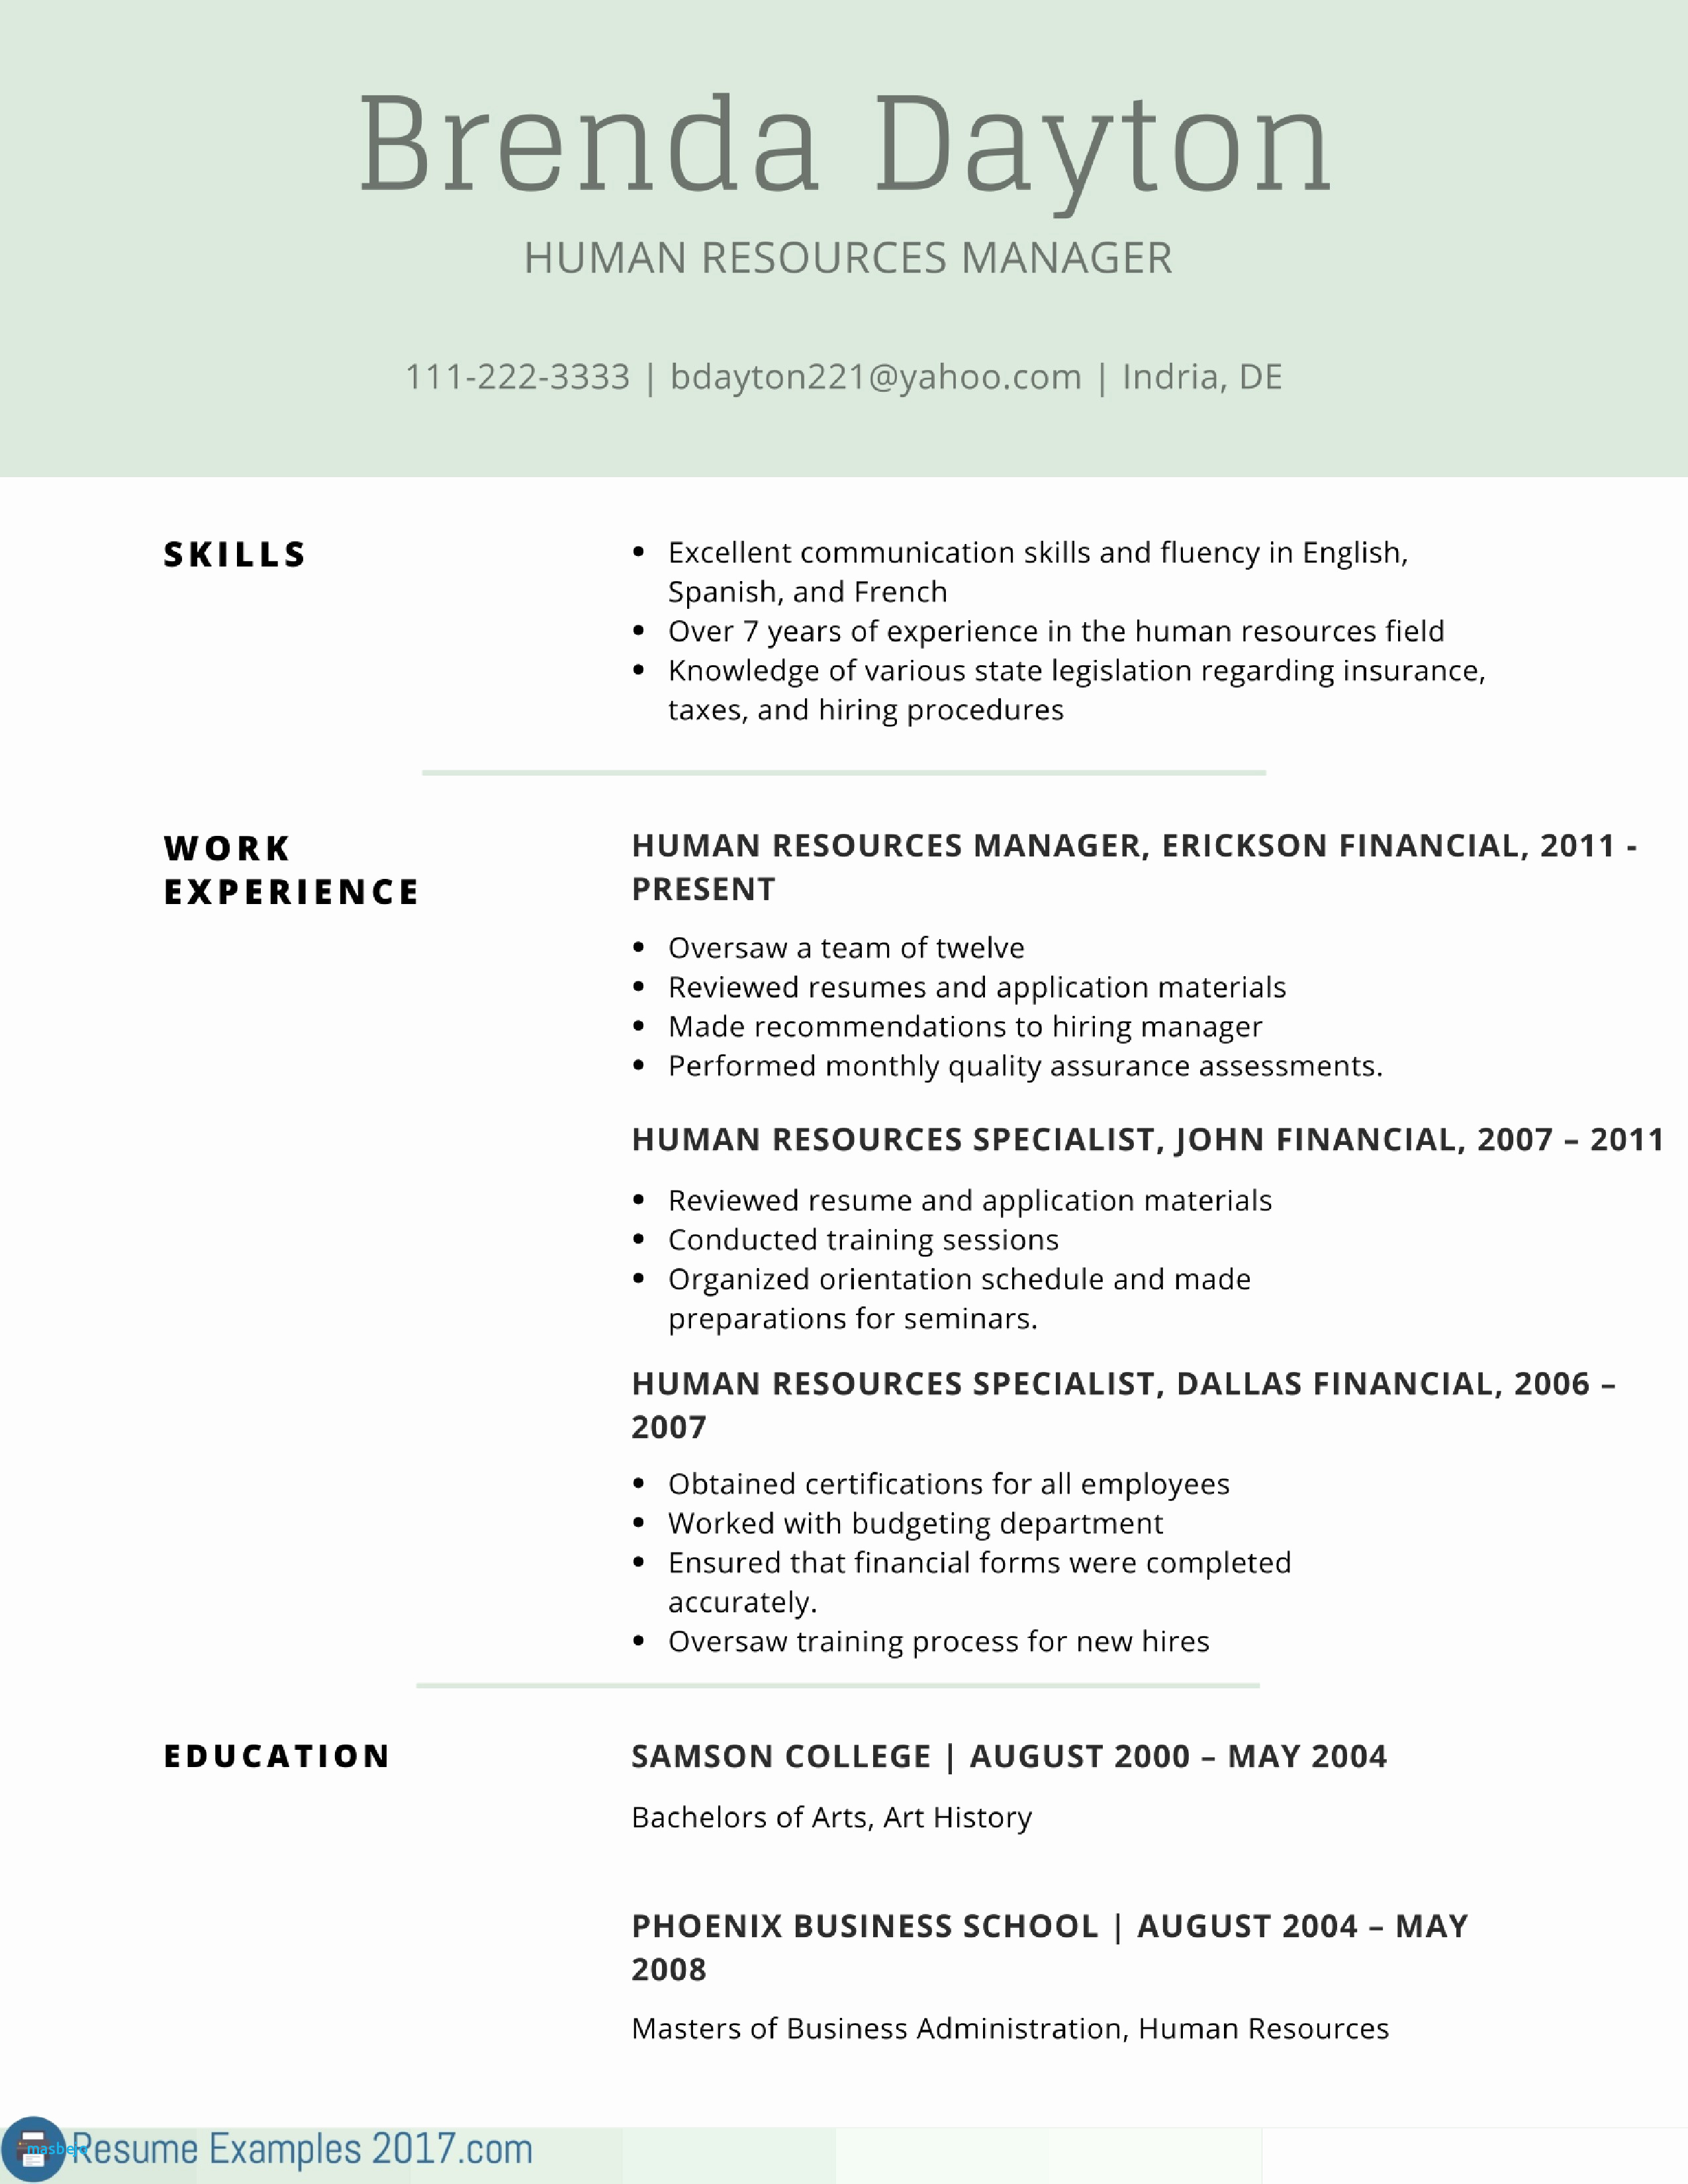 Resume for Videographer - Professional Business Resume Template Resume Template Builder Unique